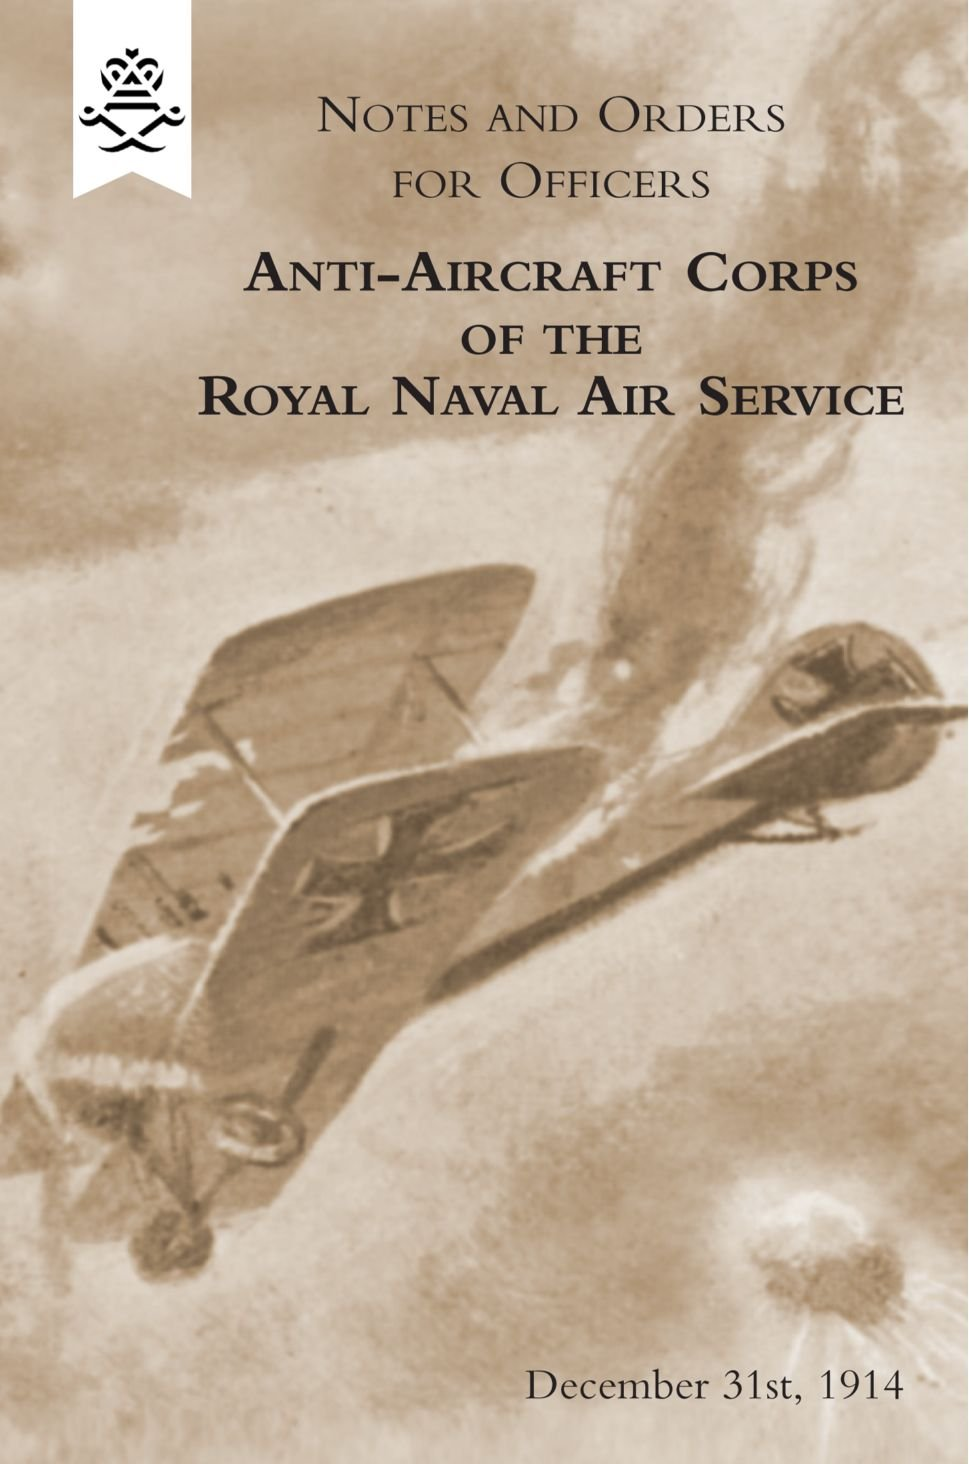 Notes and Orders for Officers Anti-Aircraft Corps of the Royal Naval Air Service (London Division) 1914 ebook